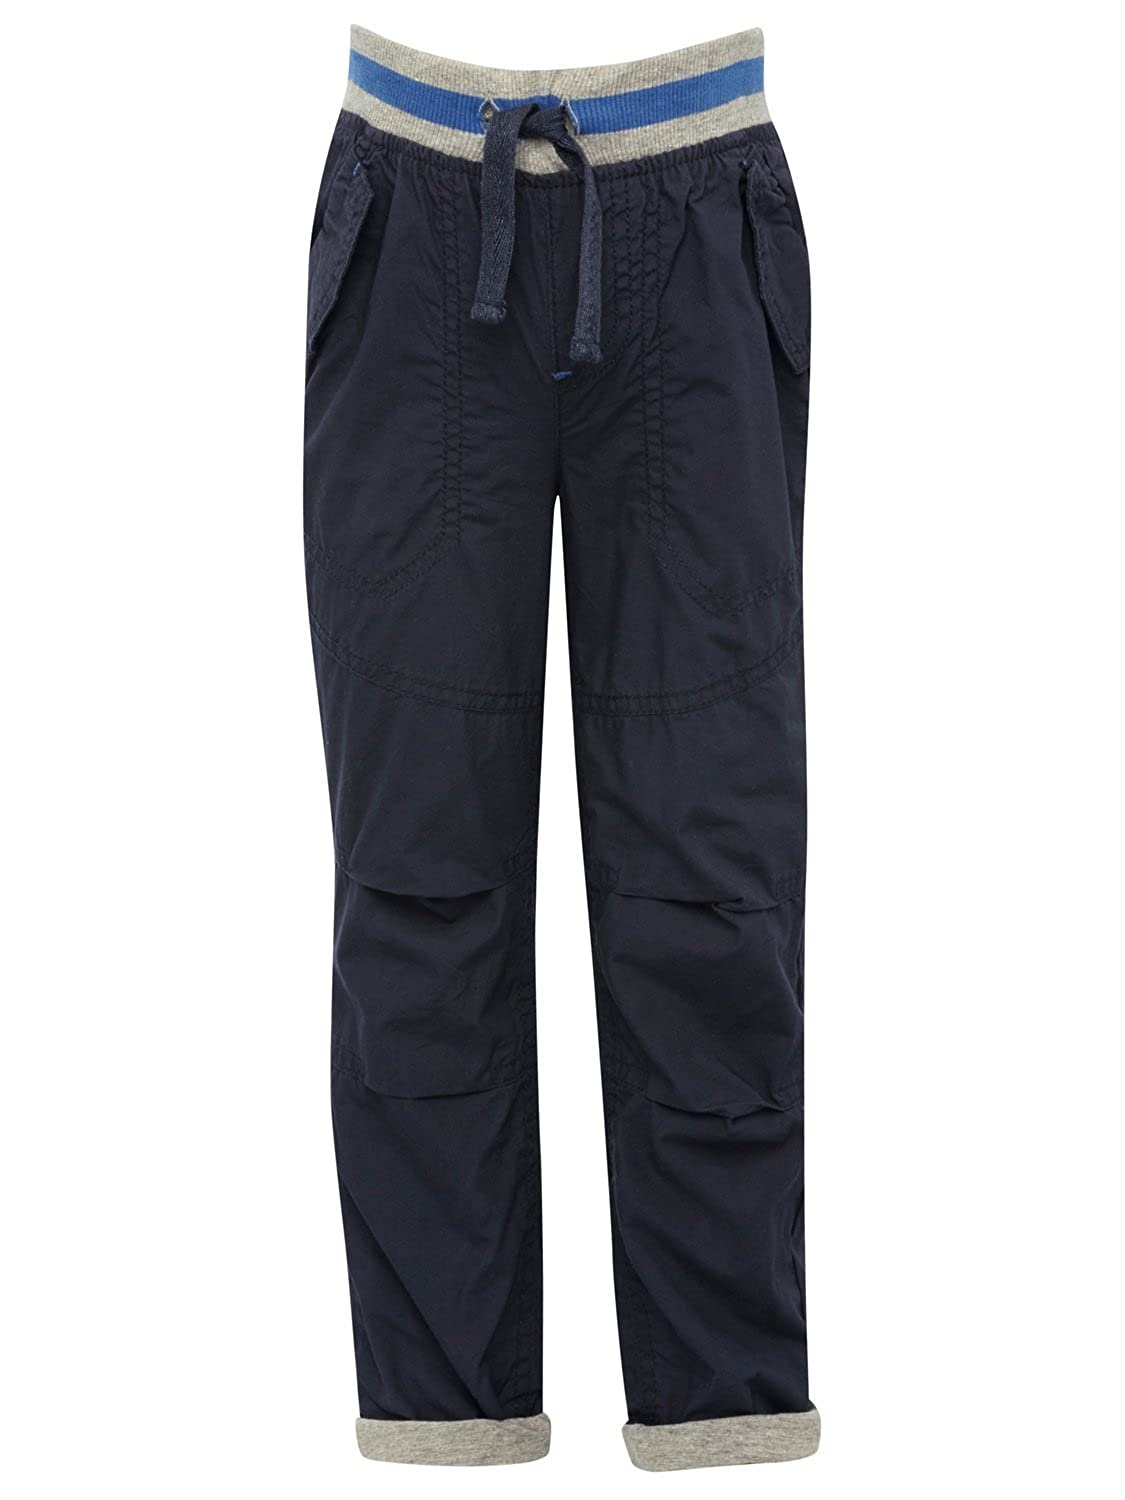 M& Co Boys Full Length Cotton Lined Plain Poplin Casual Trousers with Pockets